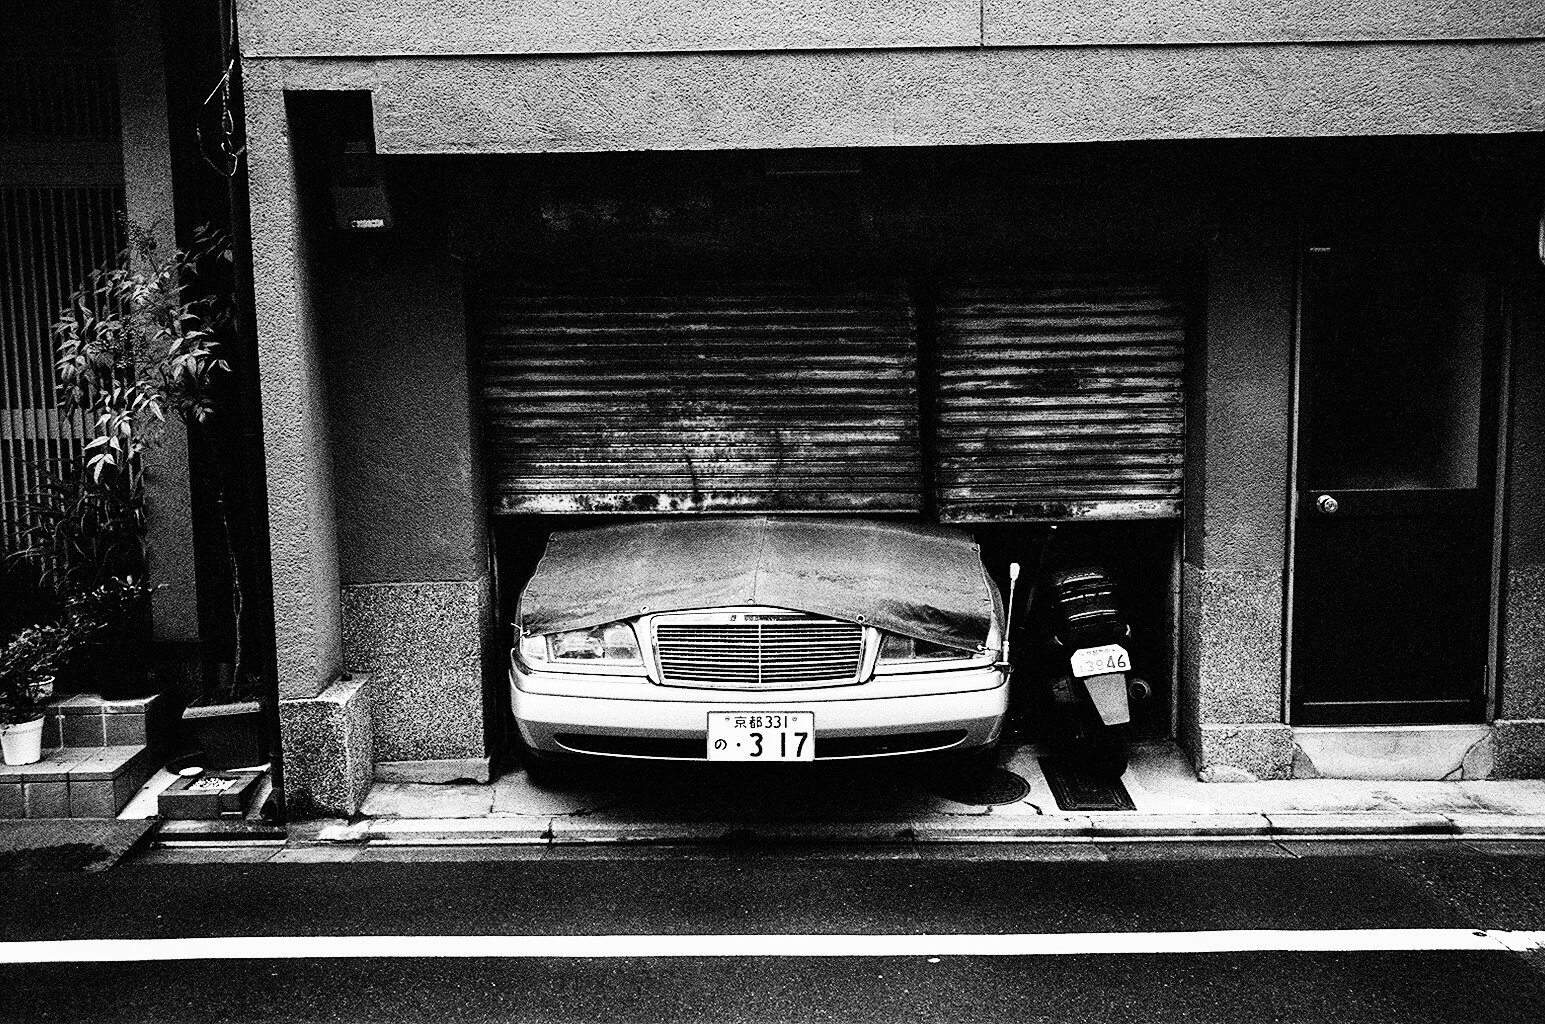 kyoto-car-old-school-2015-film-trix-1600-eric-kim-street-photograpy-black-and-white-monochrome-19